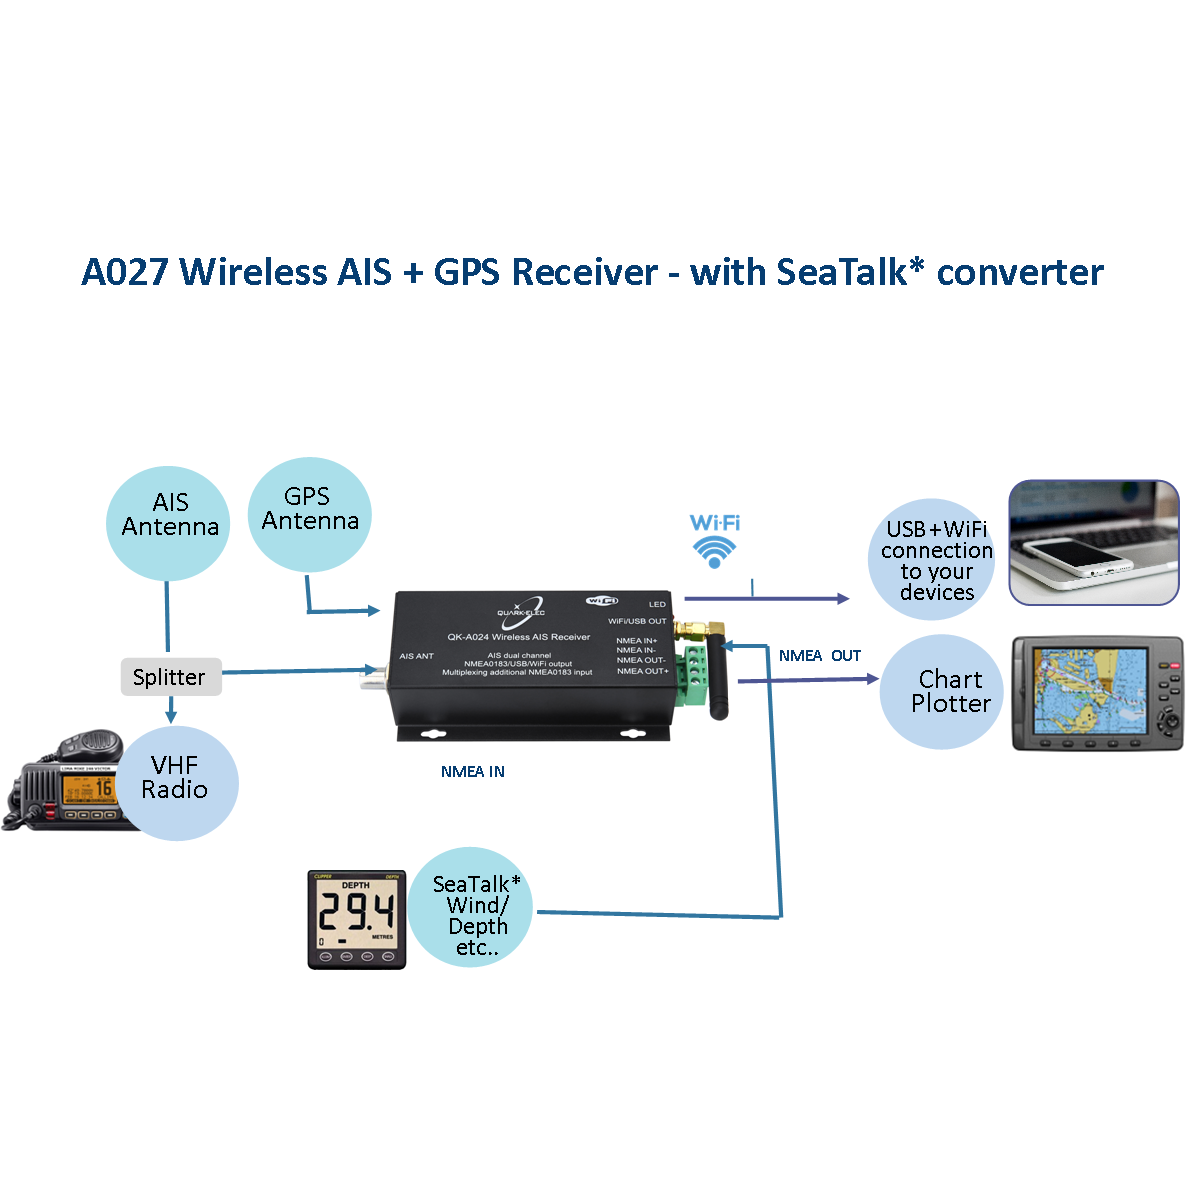 small resolution of it can receive information from both ais frequencies simultaneously it includes an integrated gps module that can track up to 22 satellites